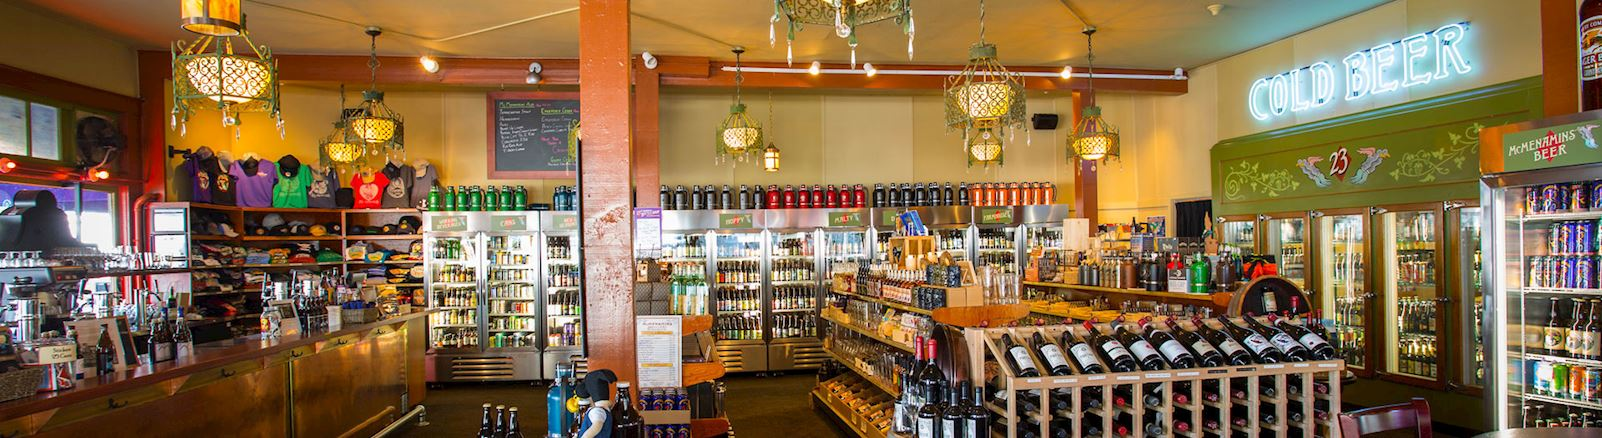 <h3>23rd Avenue Bottle Shop is open, selling beer, wine and spirits!</h3>